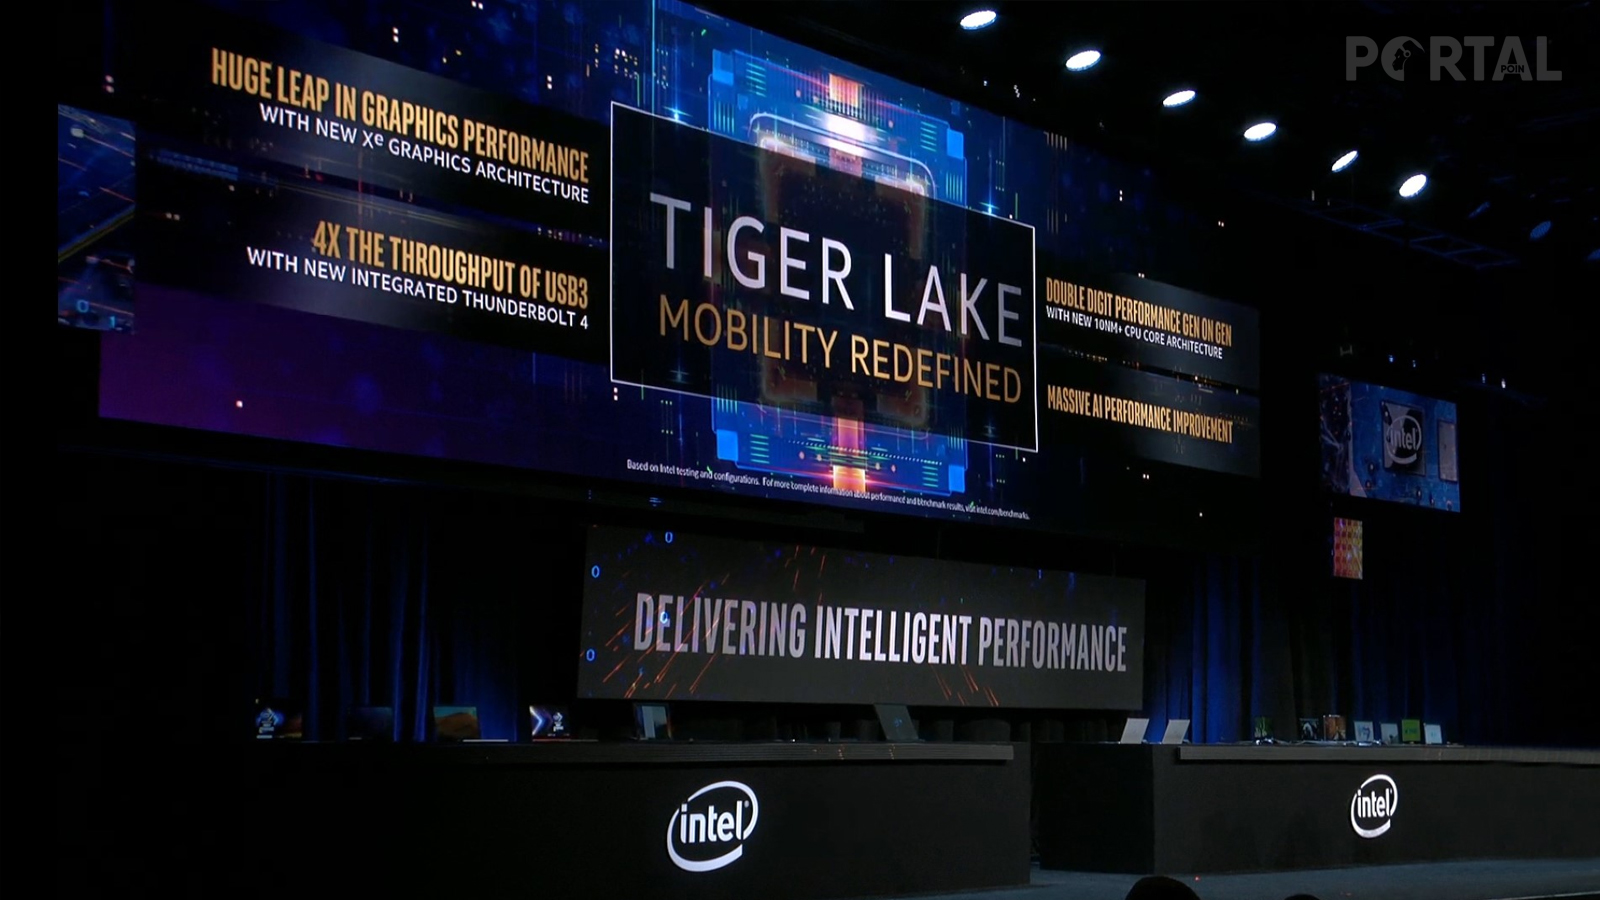 Intel's Tiger Lake CPU 11th 10nm